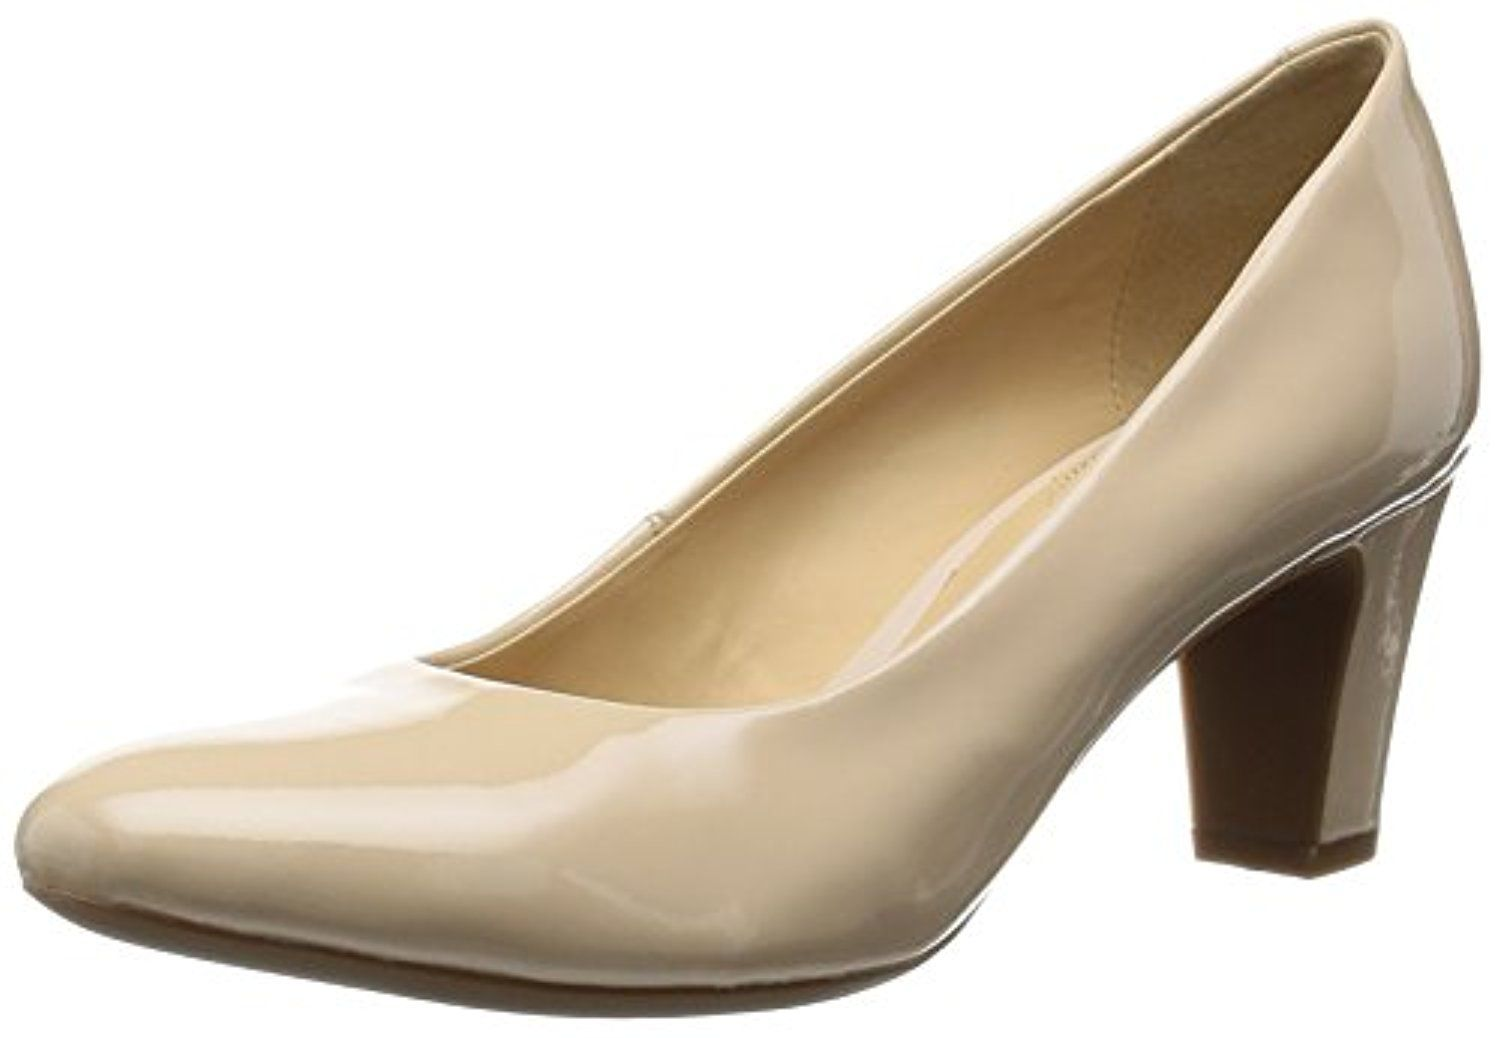 Womens D Mariele Mid B Closed-Toe Pumps Geox 100% Original Deals Cheap Online Extremely Cheap Price Discount 7F8qObWYQx